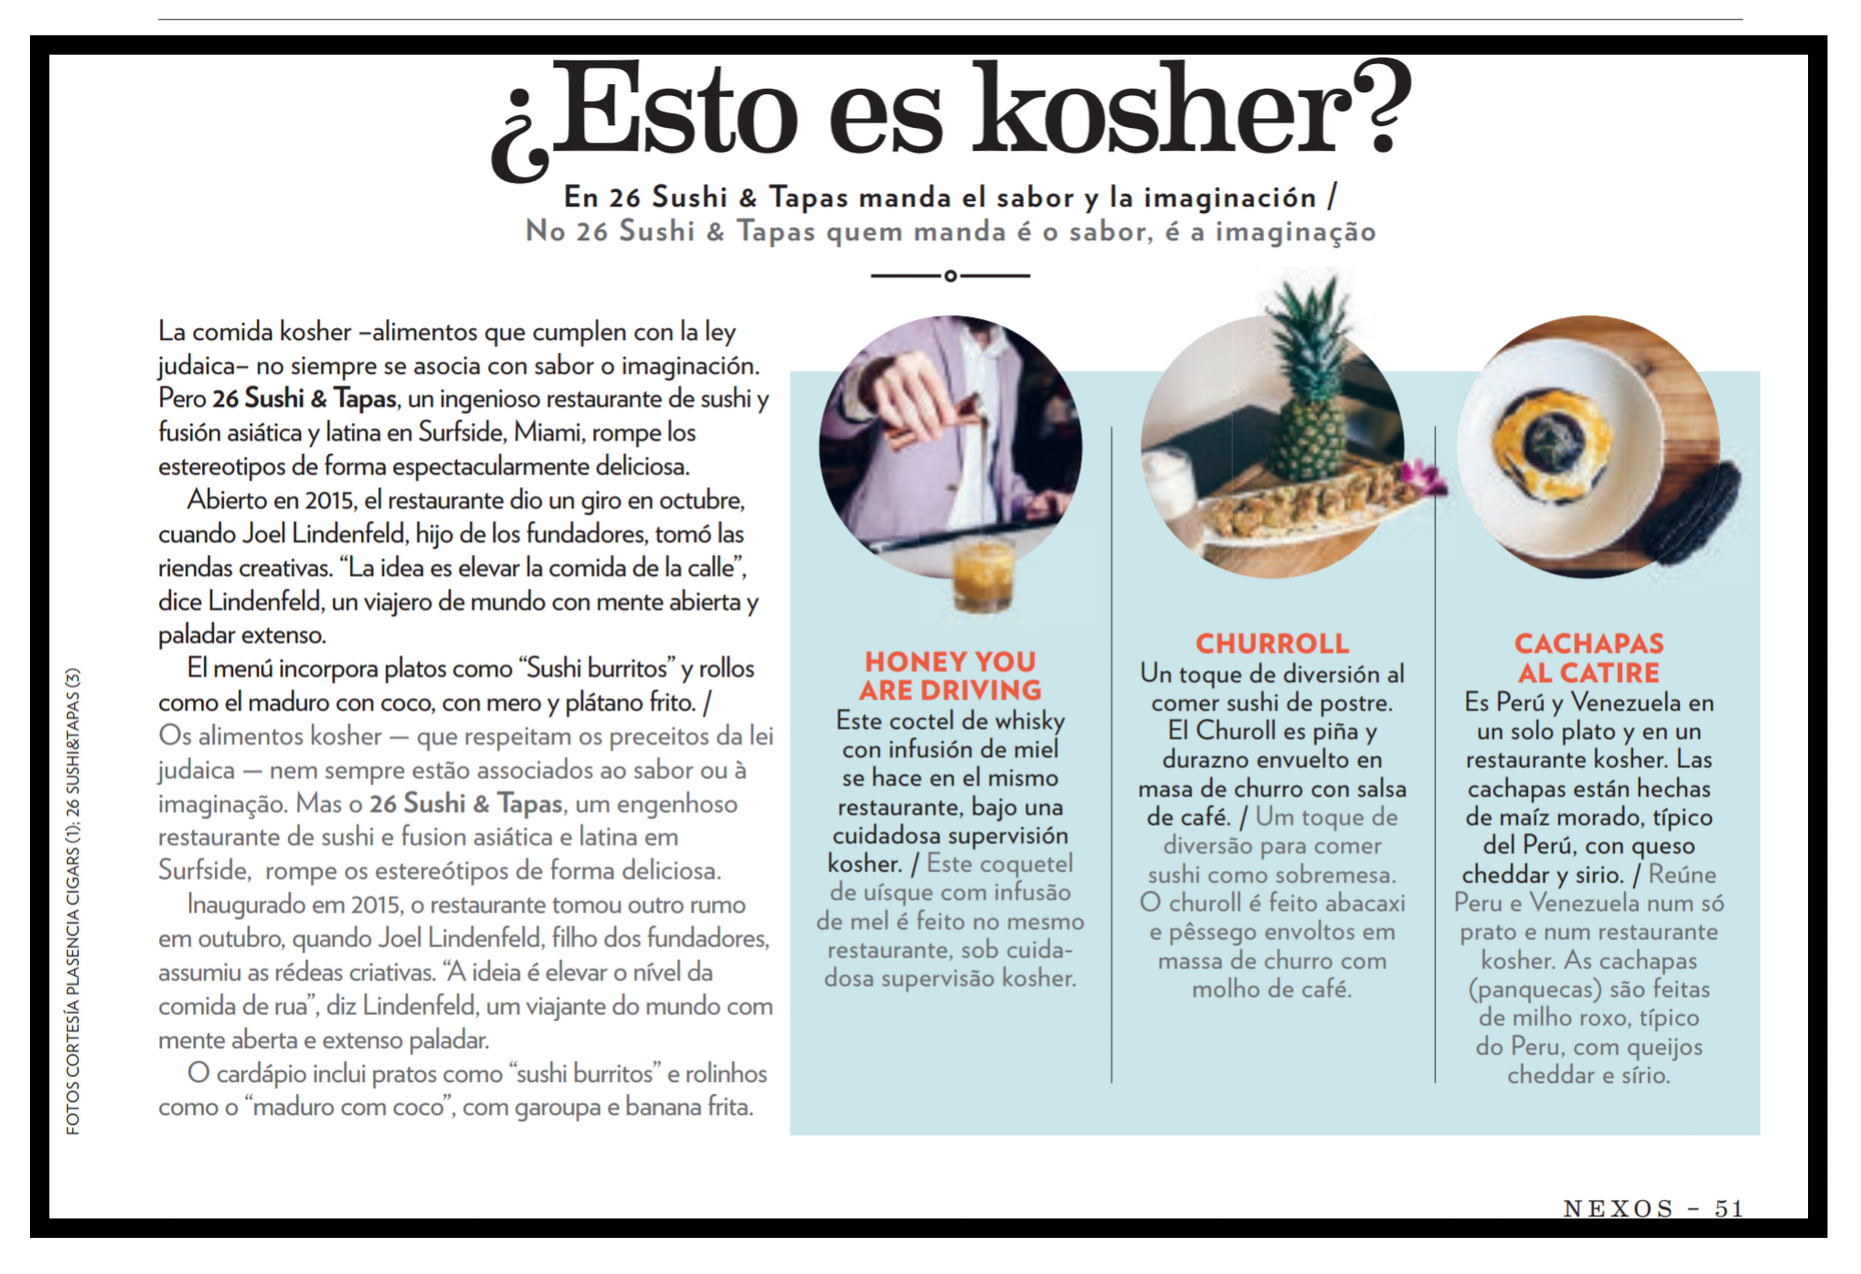 NEXOS MAGAZINE - APRIL/MAY 2017 - We are so proud of this accomplishment. We are now featured on American Airline's Latin American magazine. Have you seen the article on board yet? Send us your pictures with it! @26Sushi_Tapas